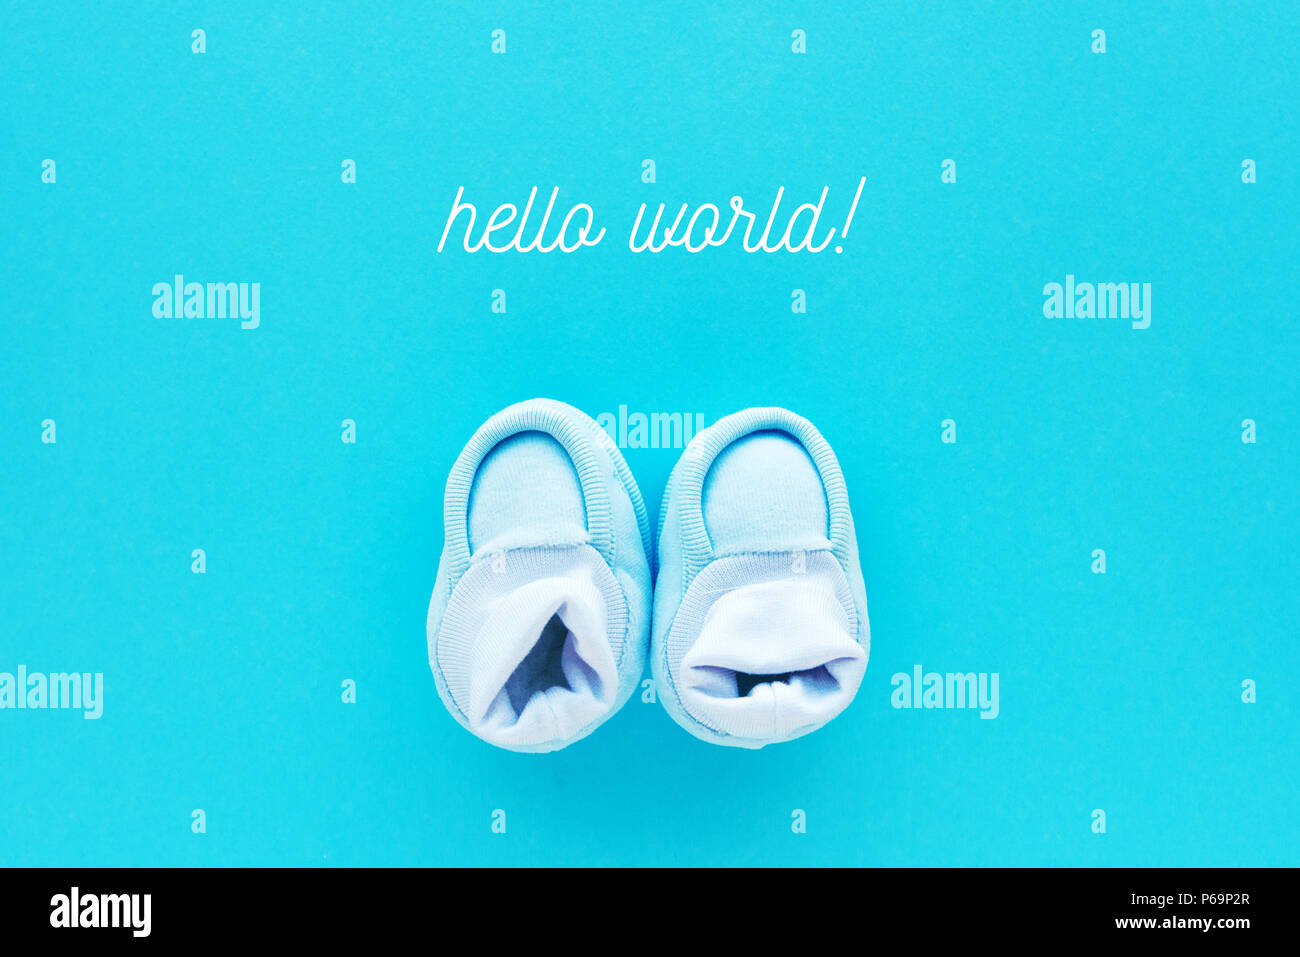 hello world message with small newborn baby boy cotton shoes viewed